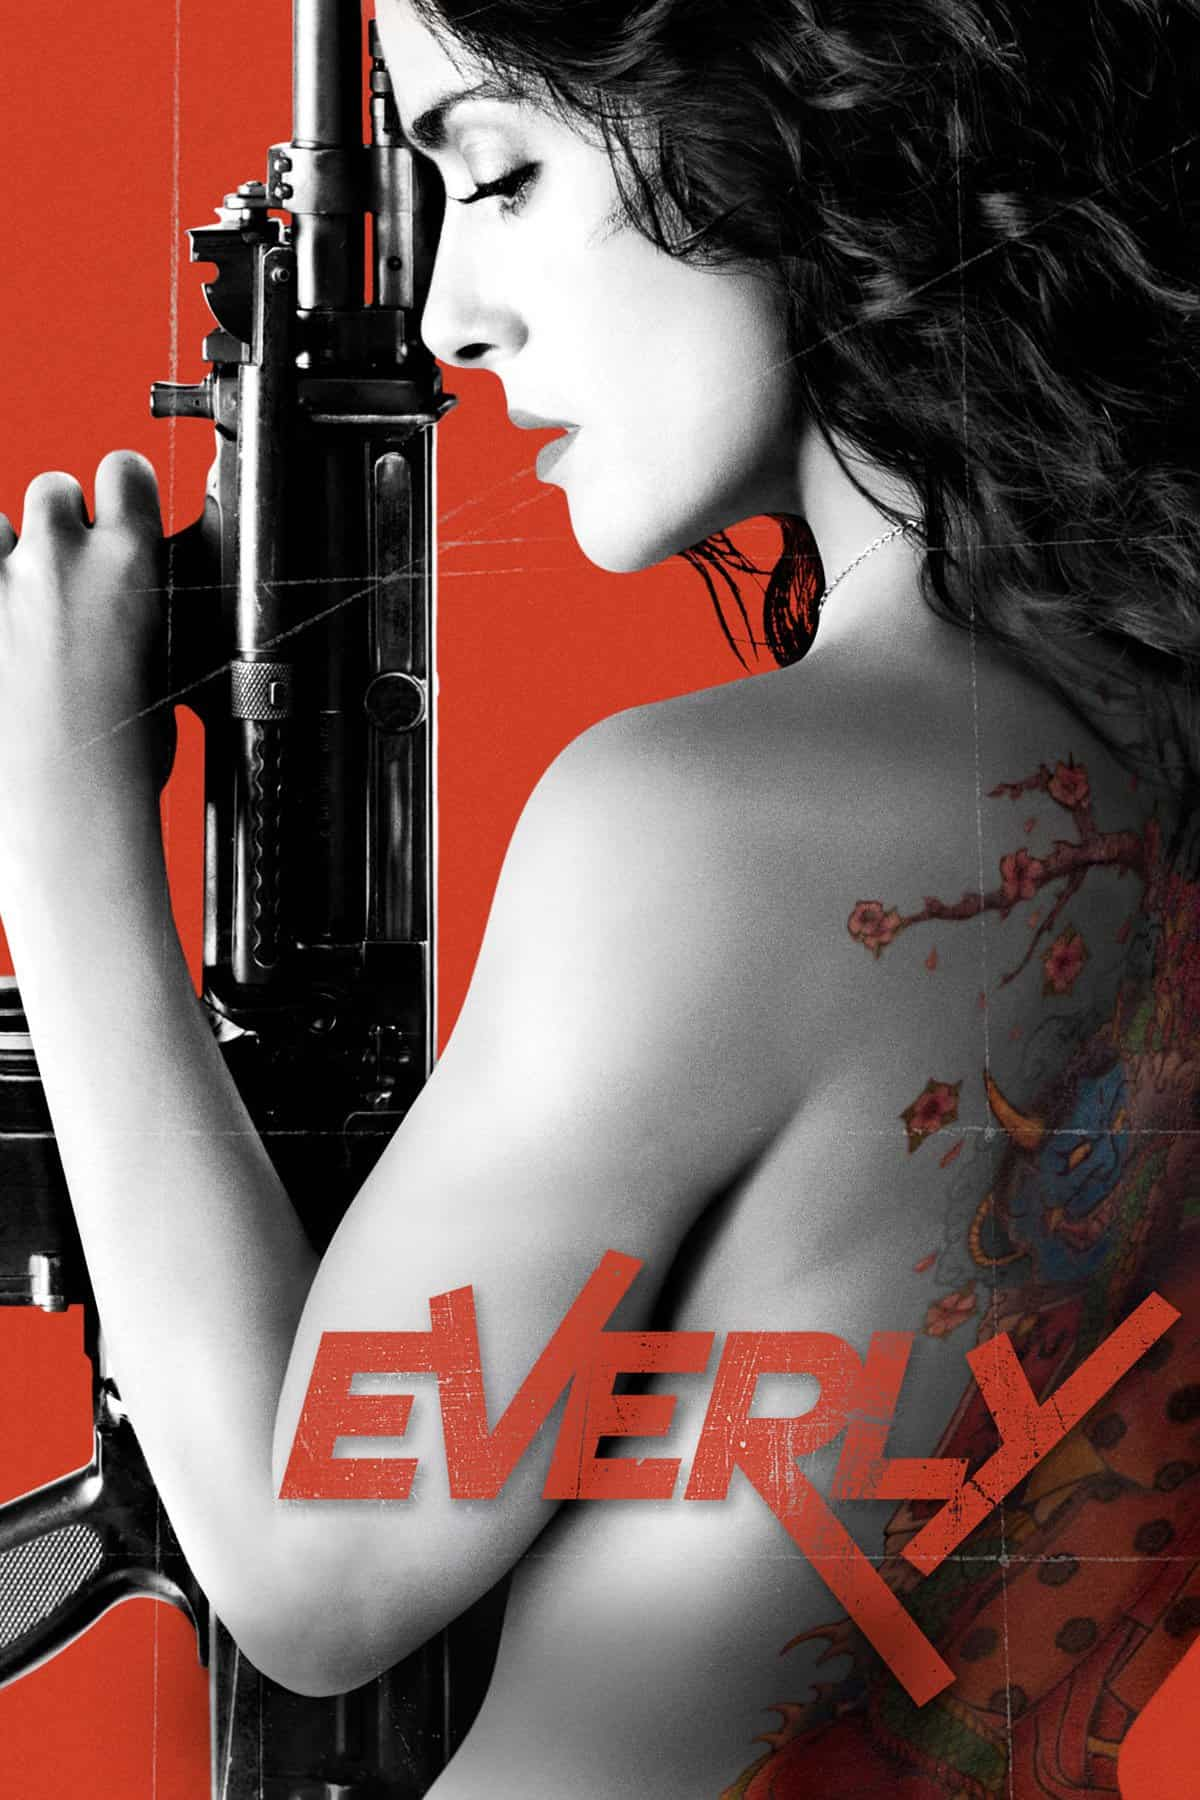 Everly, 2014